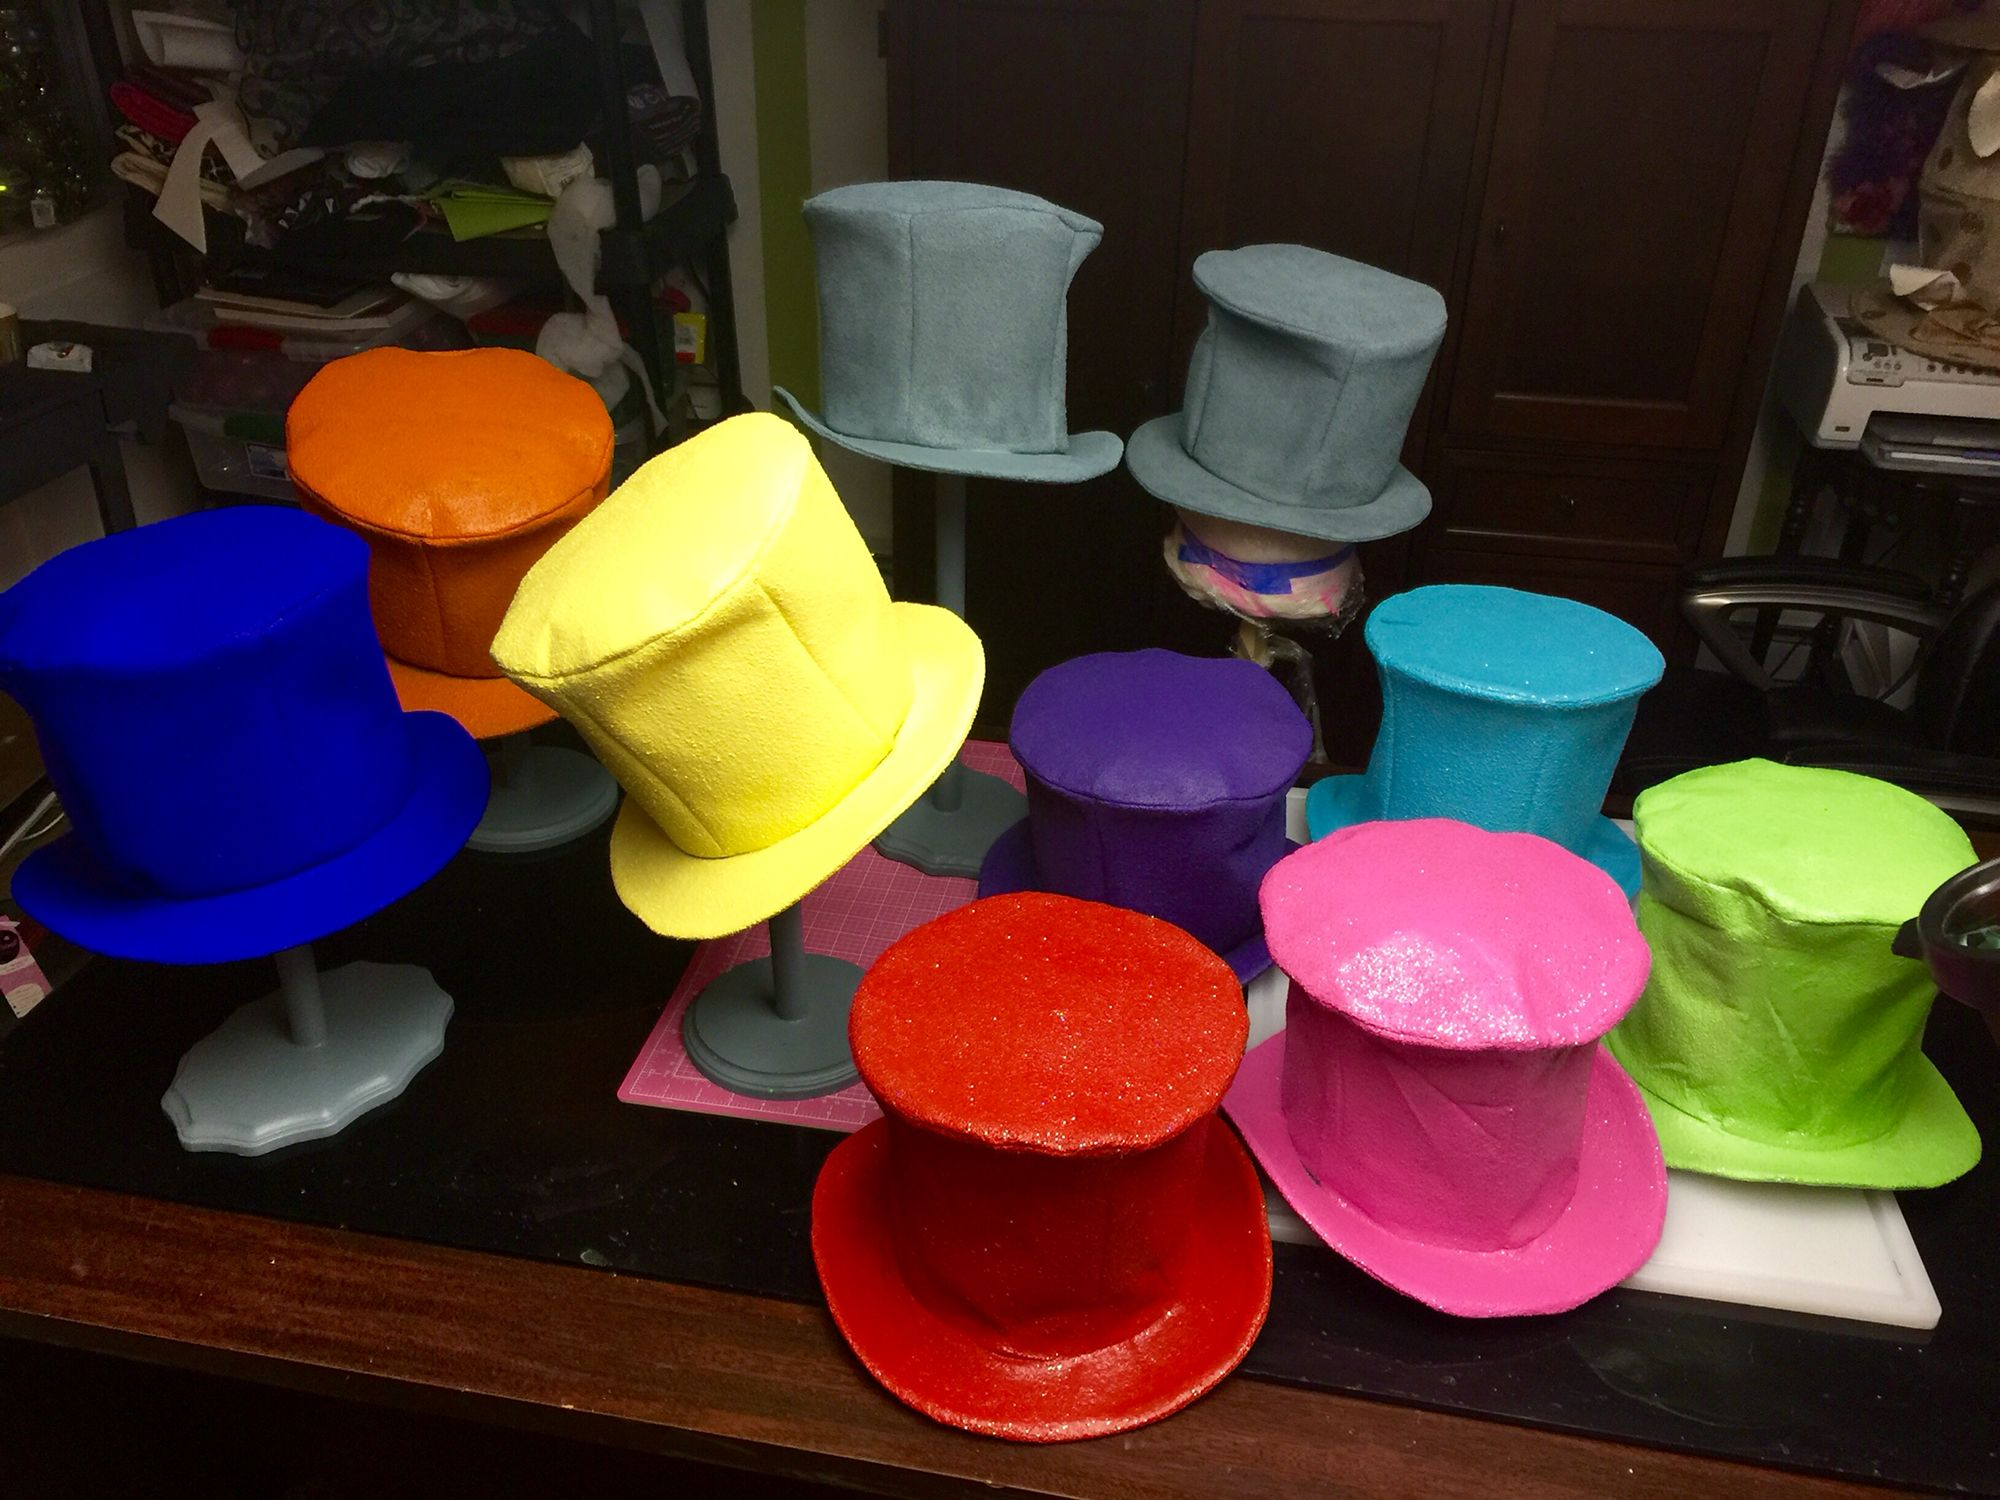 Mad hatter tea & Thatu0027s ten top hats the gray ones are just primed... Once decorated ...